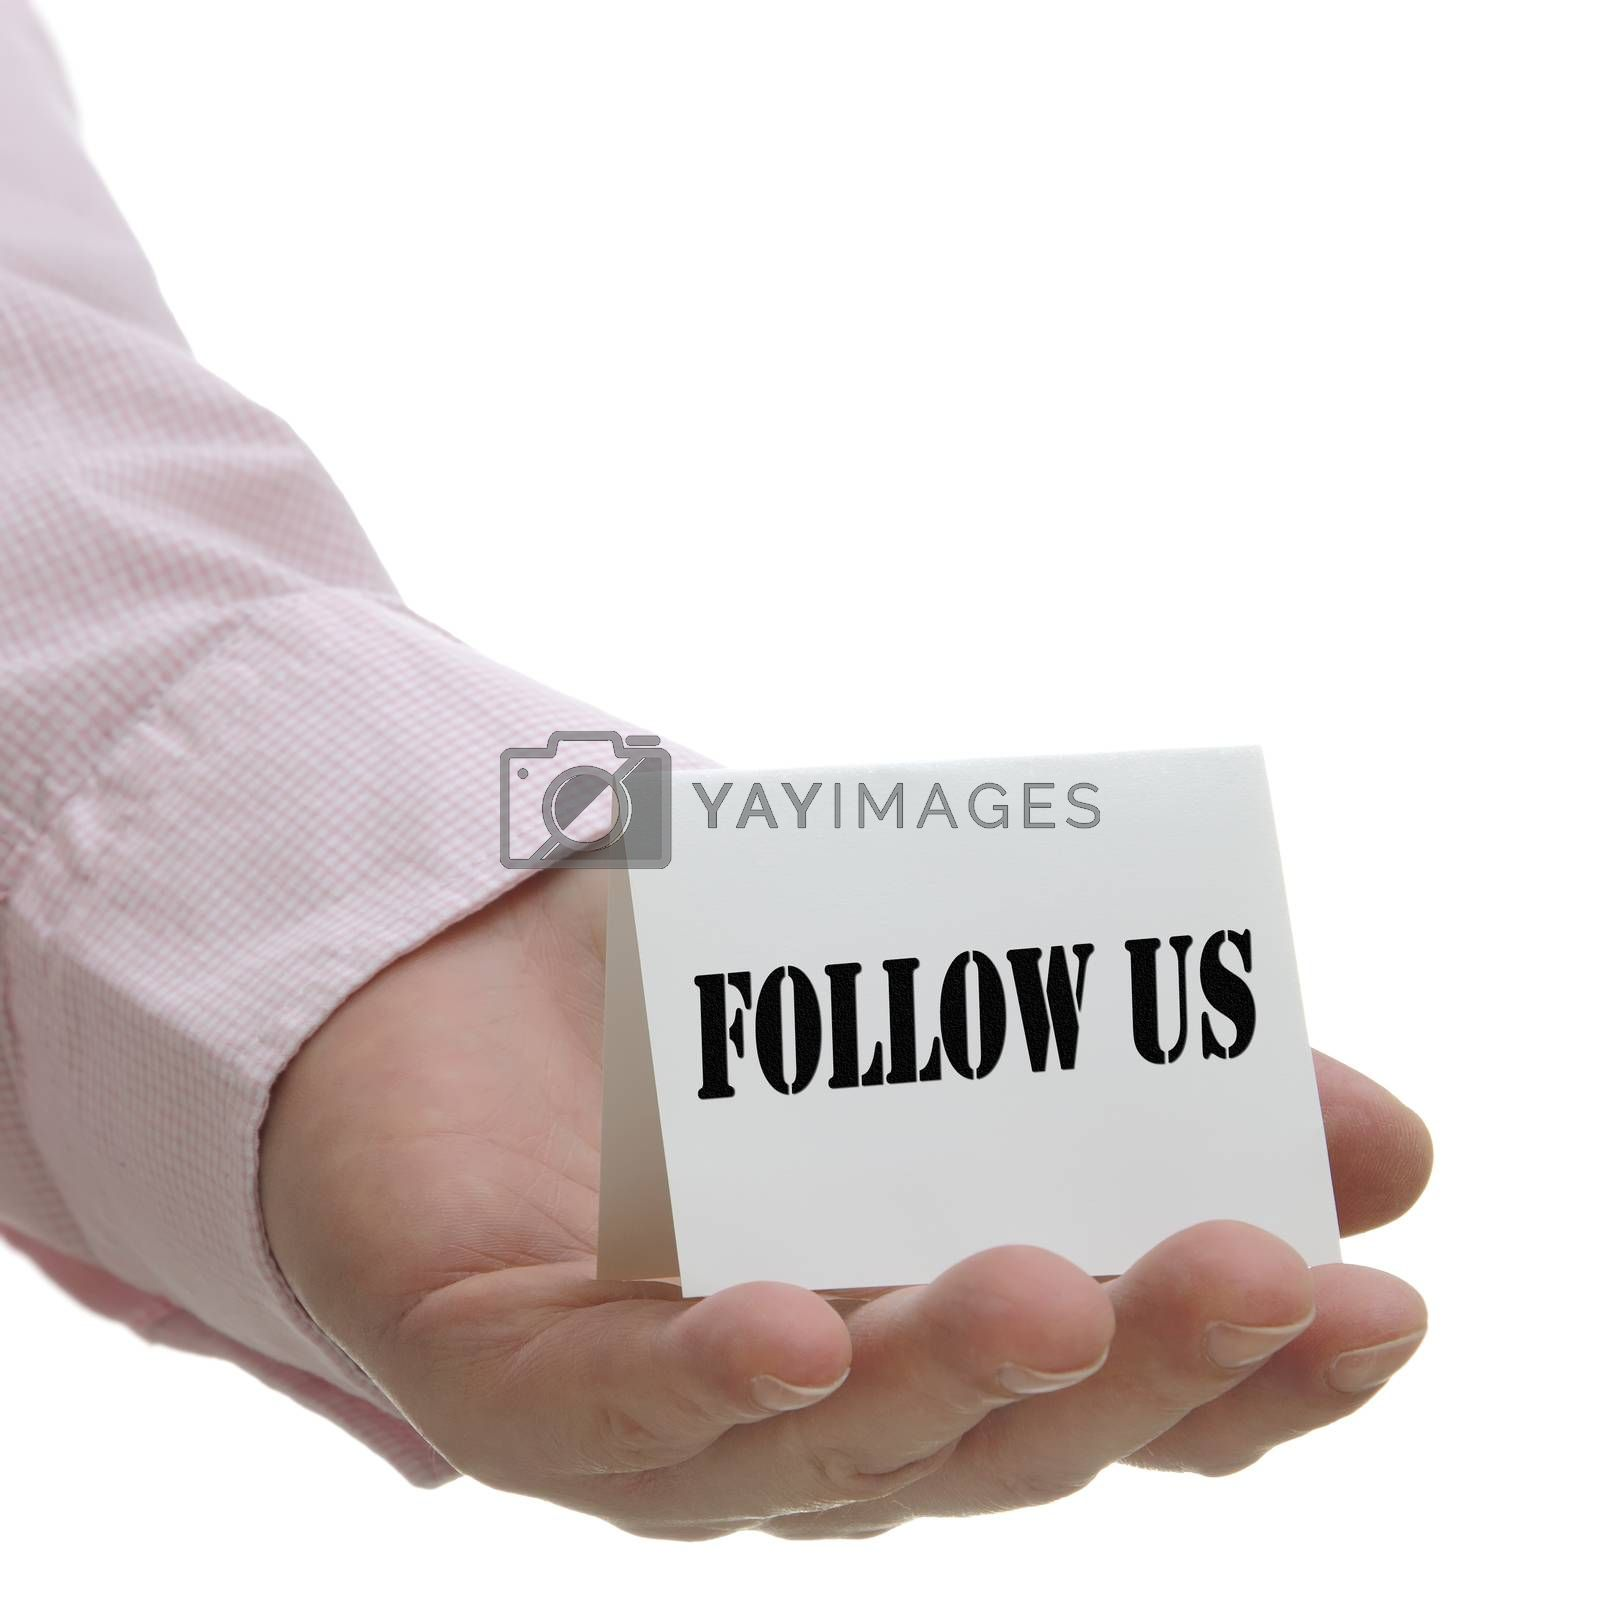 Royalty free image of Follow us - sign seriers by payphoto